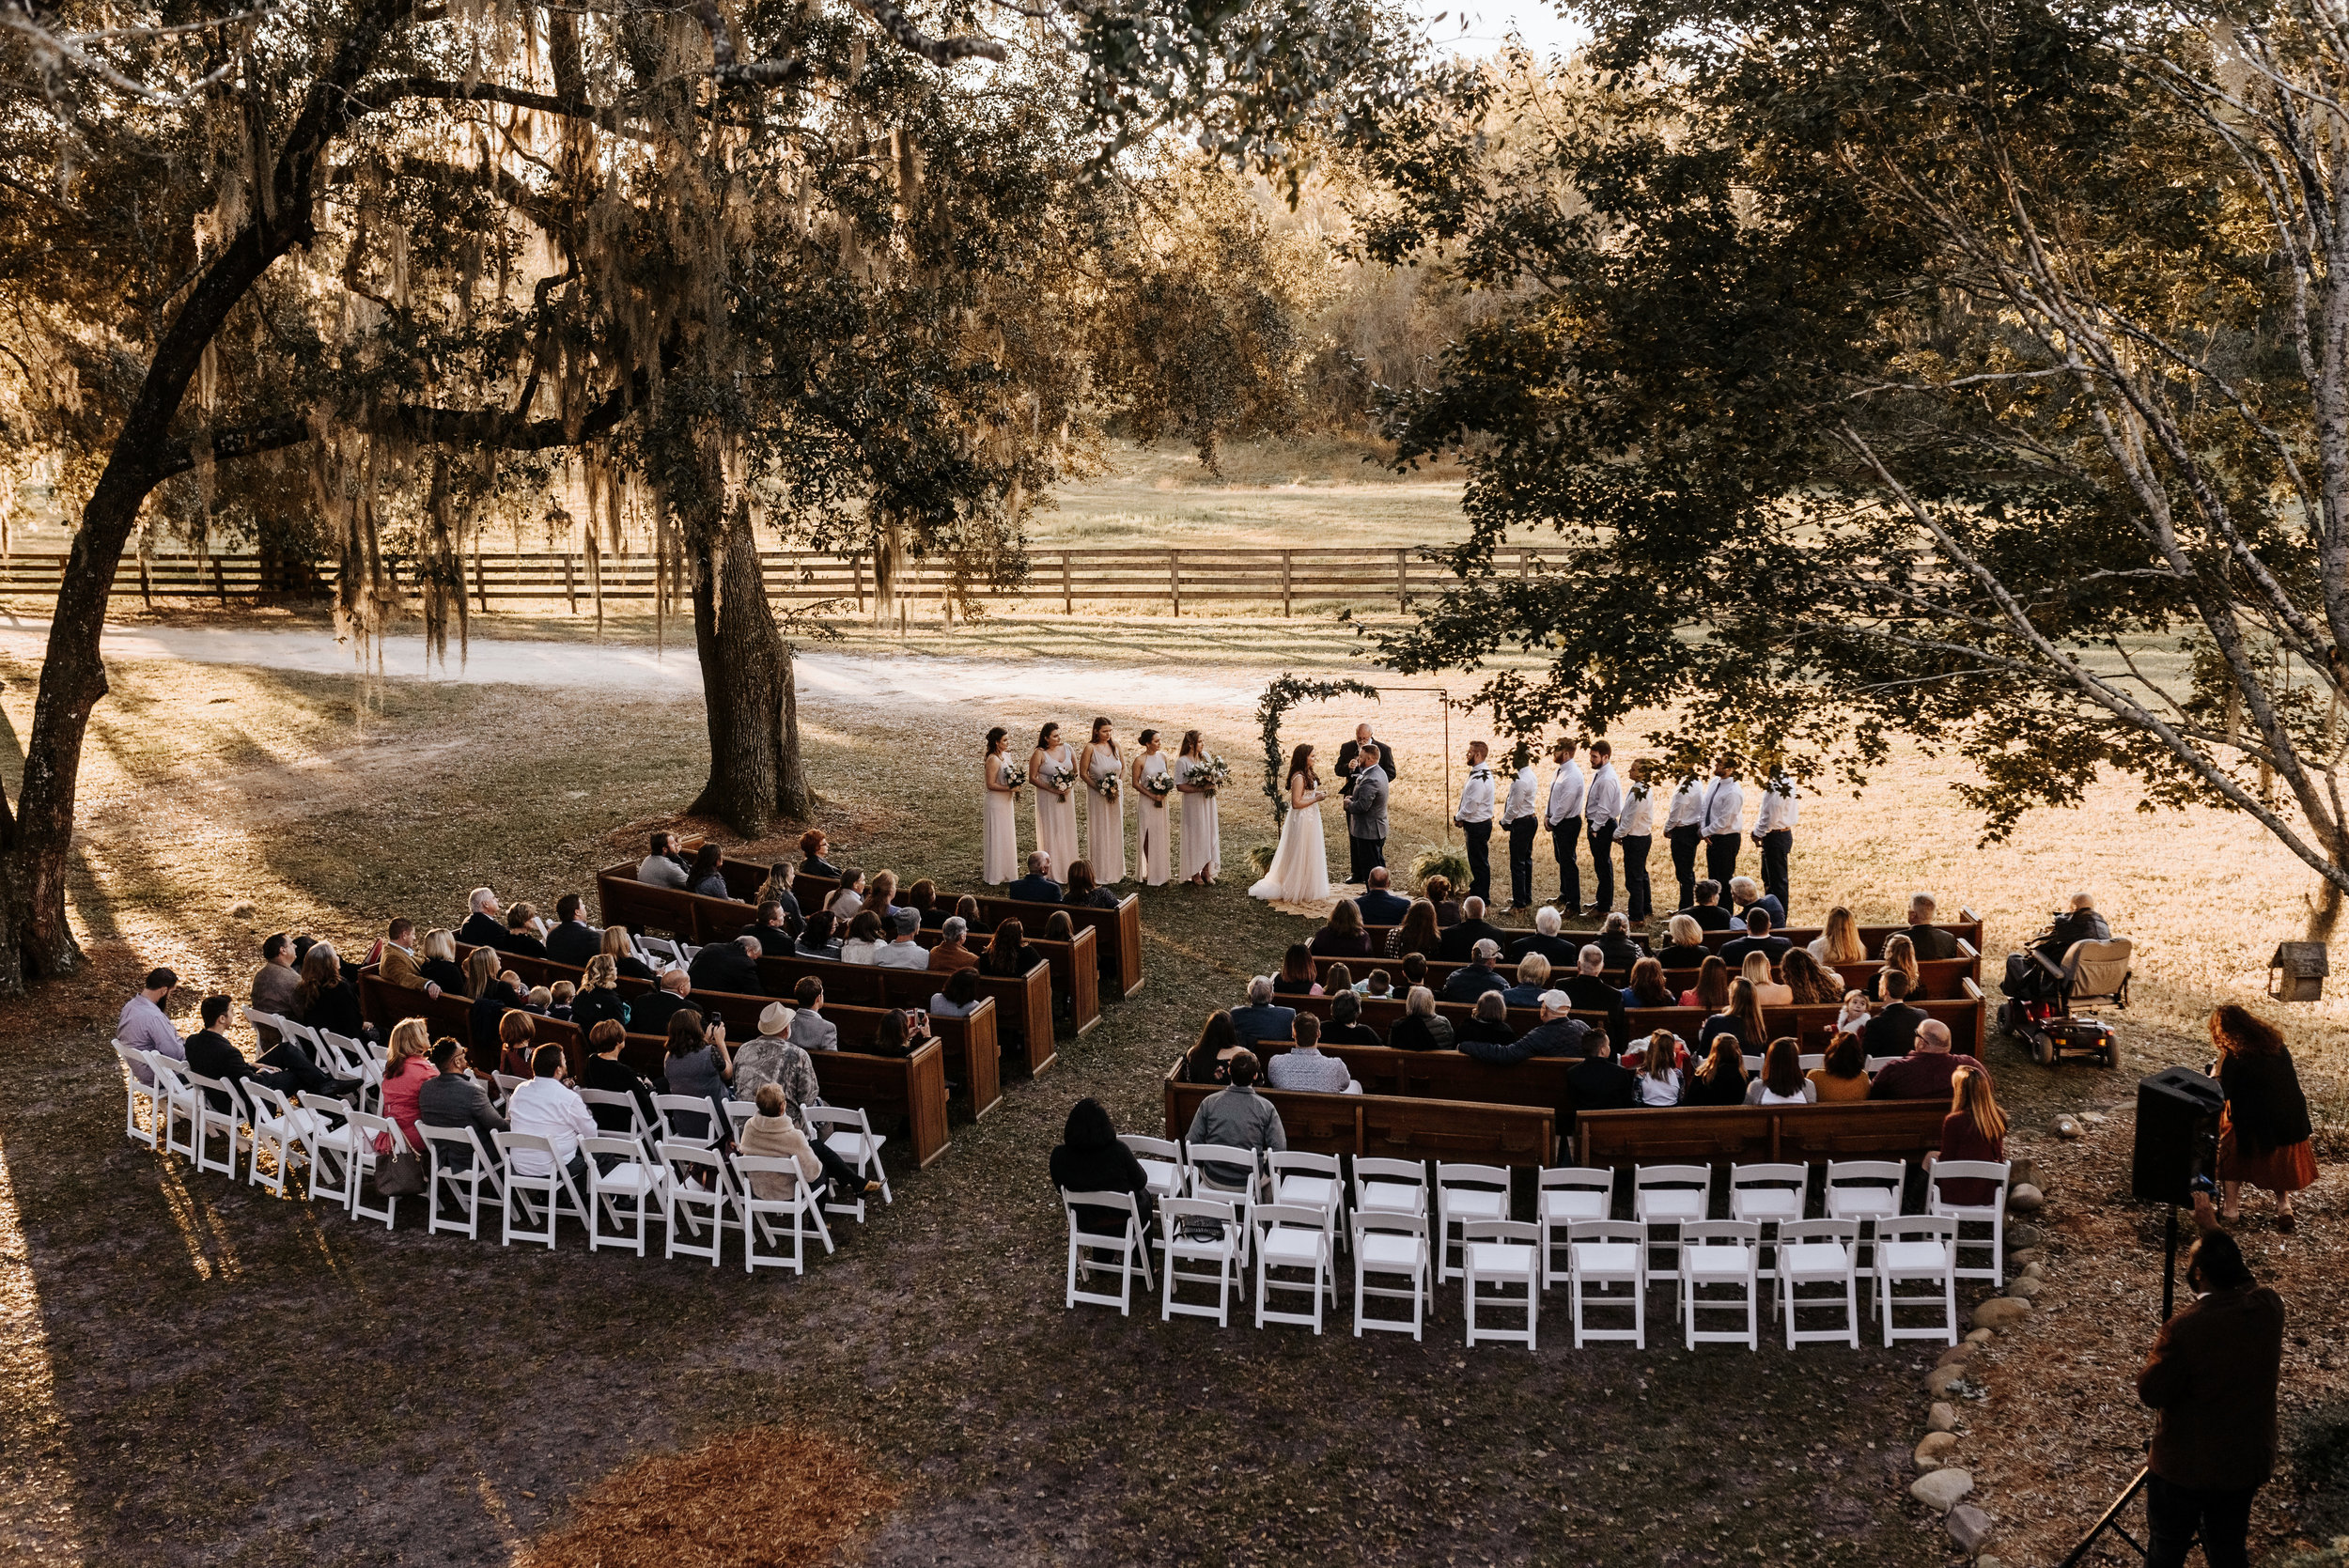 Morgan-Brandon-Wedding-All-4-One-Farms-Jacksonville-Florida-Photographer-Photography-by-V-6651.jpg